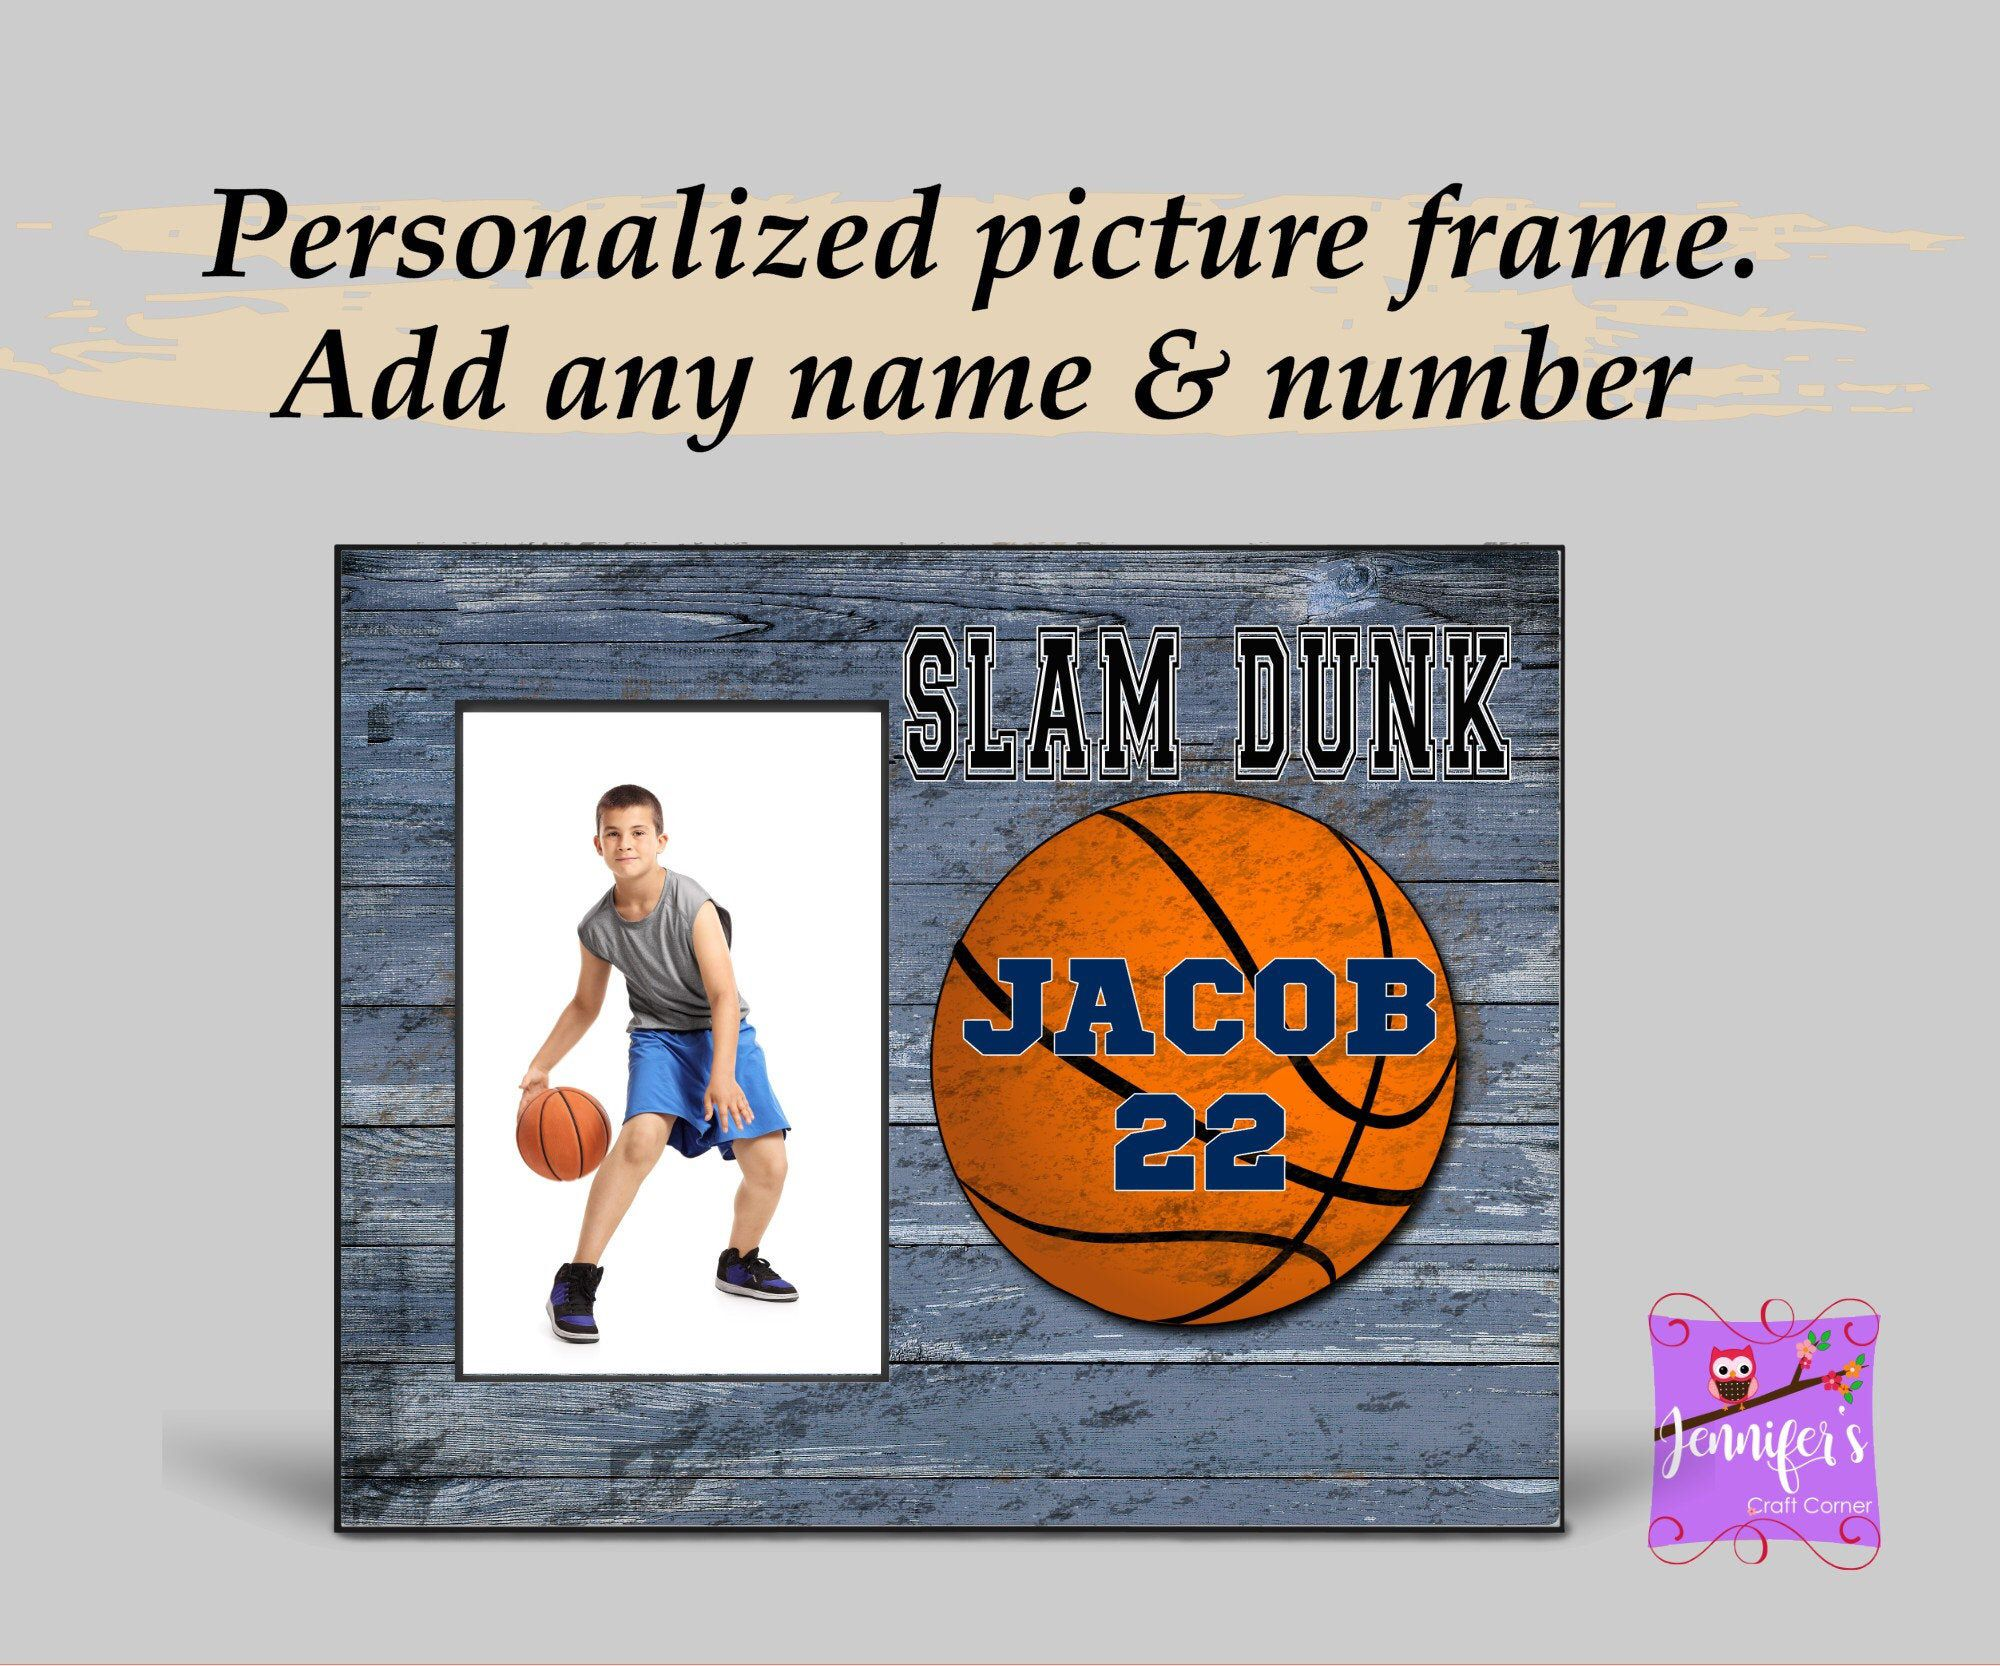 Personalized Basketball Picture Frame Sports Gift For Basketball Player Customized Gift For Athlete Basketball Team Gift Coach Gift Basketball Team Gifts Personalized Basketball Beautiful Personalized Gifts